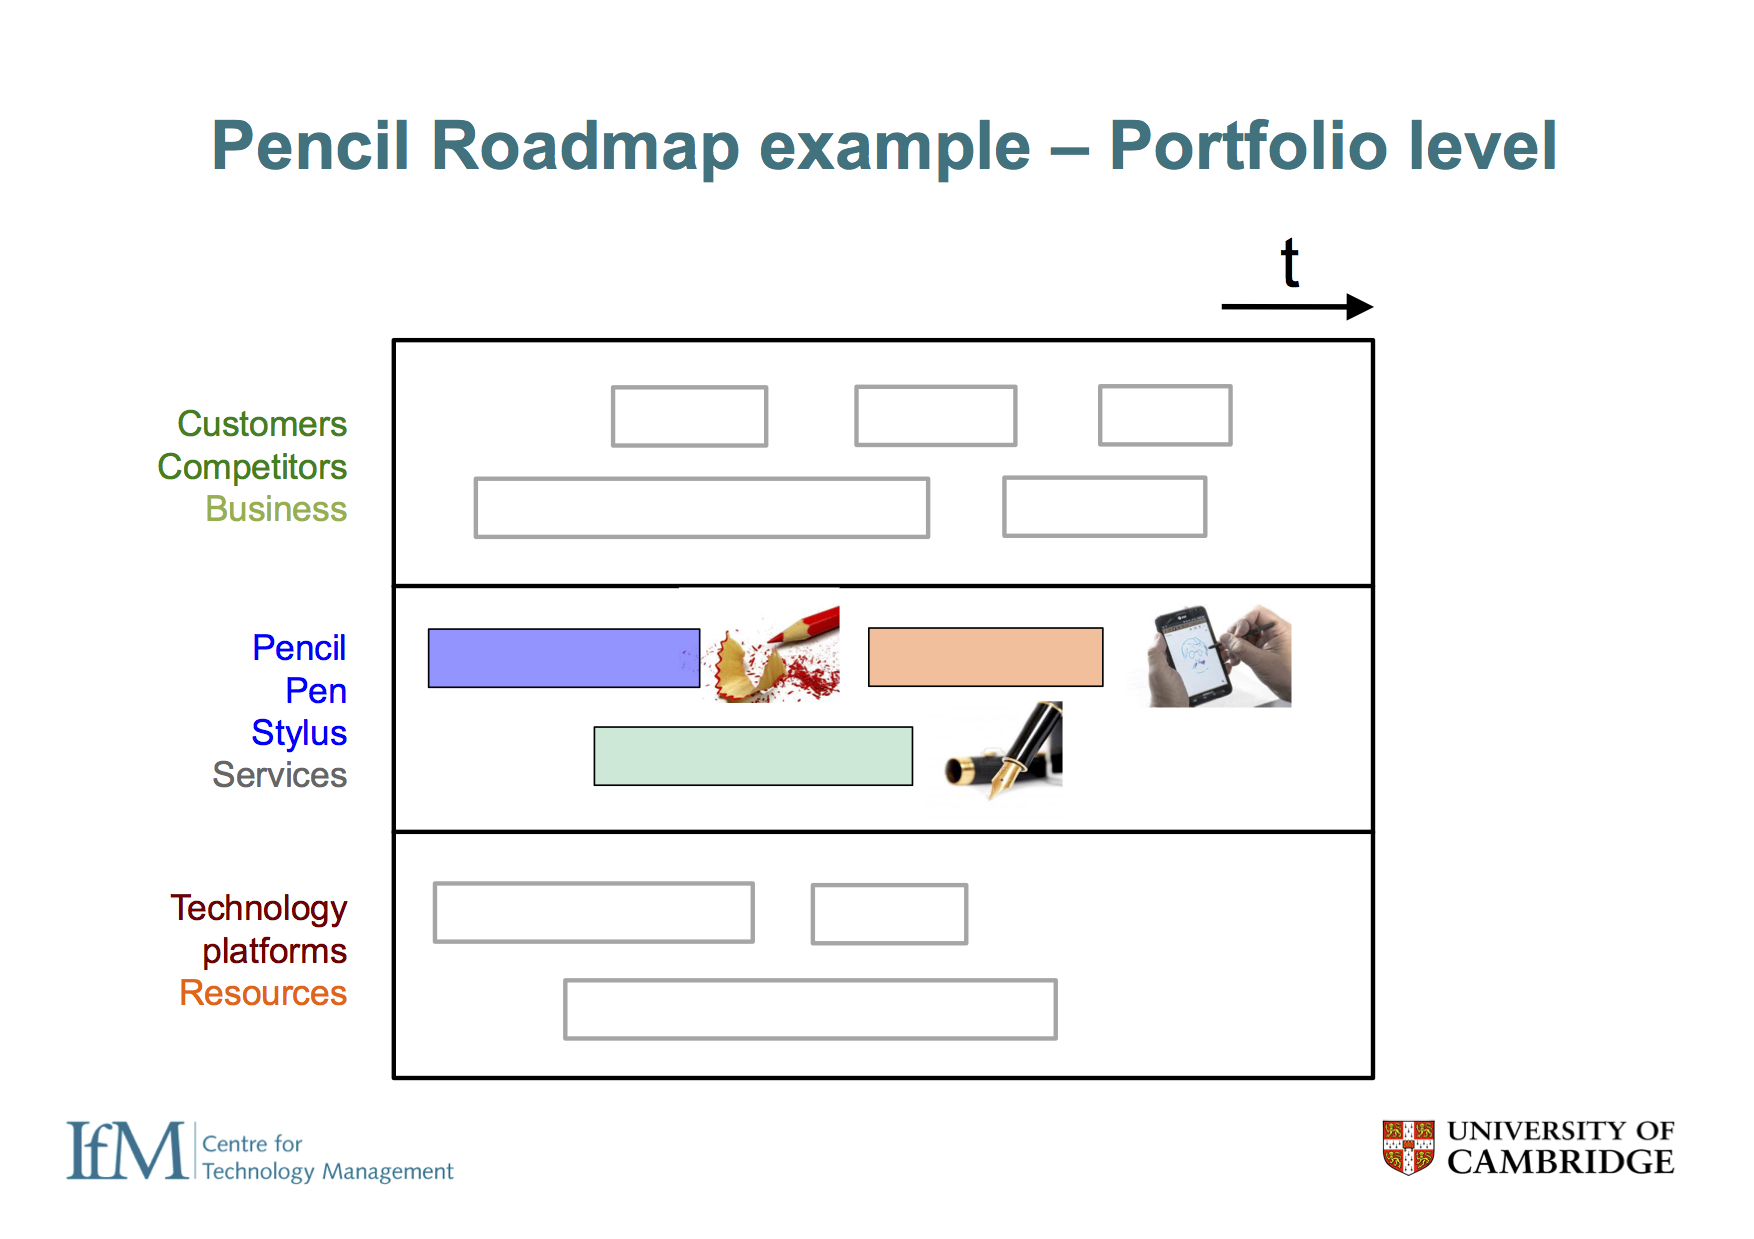 At the portfolio level, the overall strategy can be depicted on one roadmap, showing how pencils, pens and styluses are expected to develop, highlighting synergies or dependences between theses.